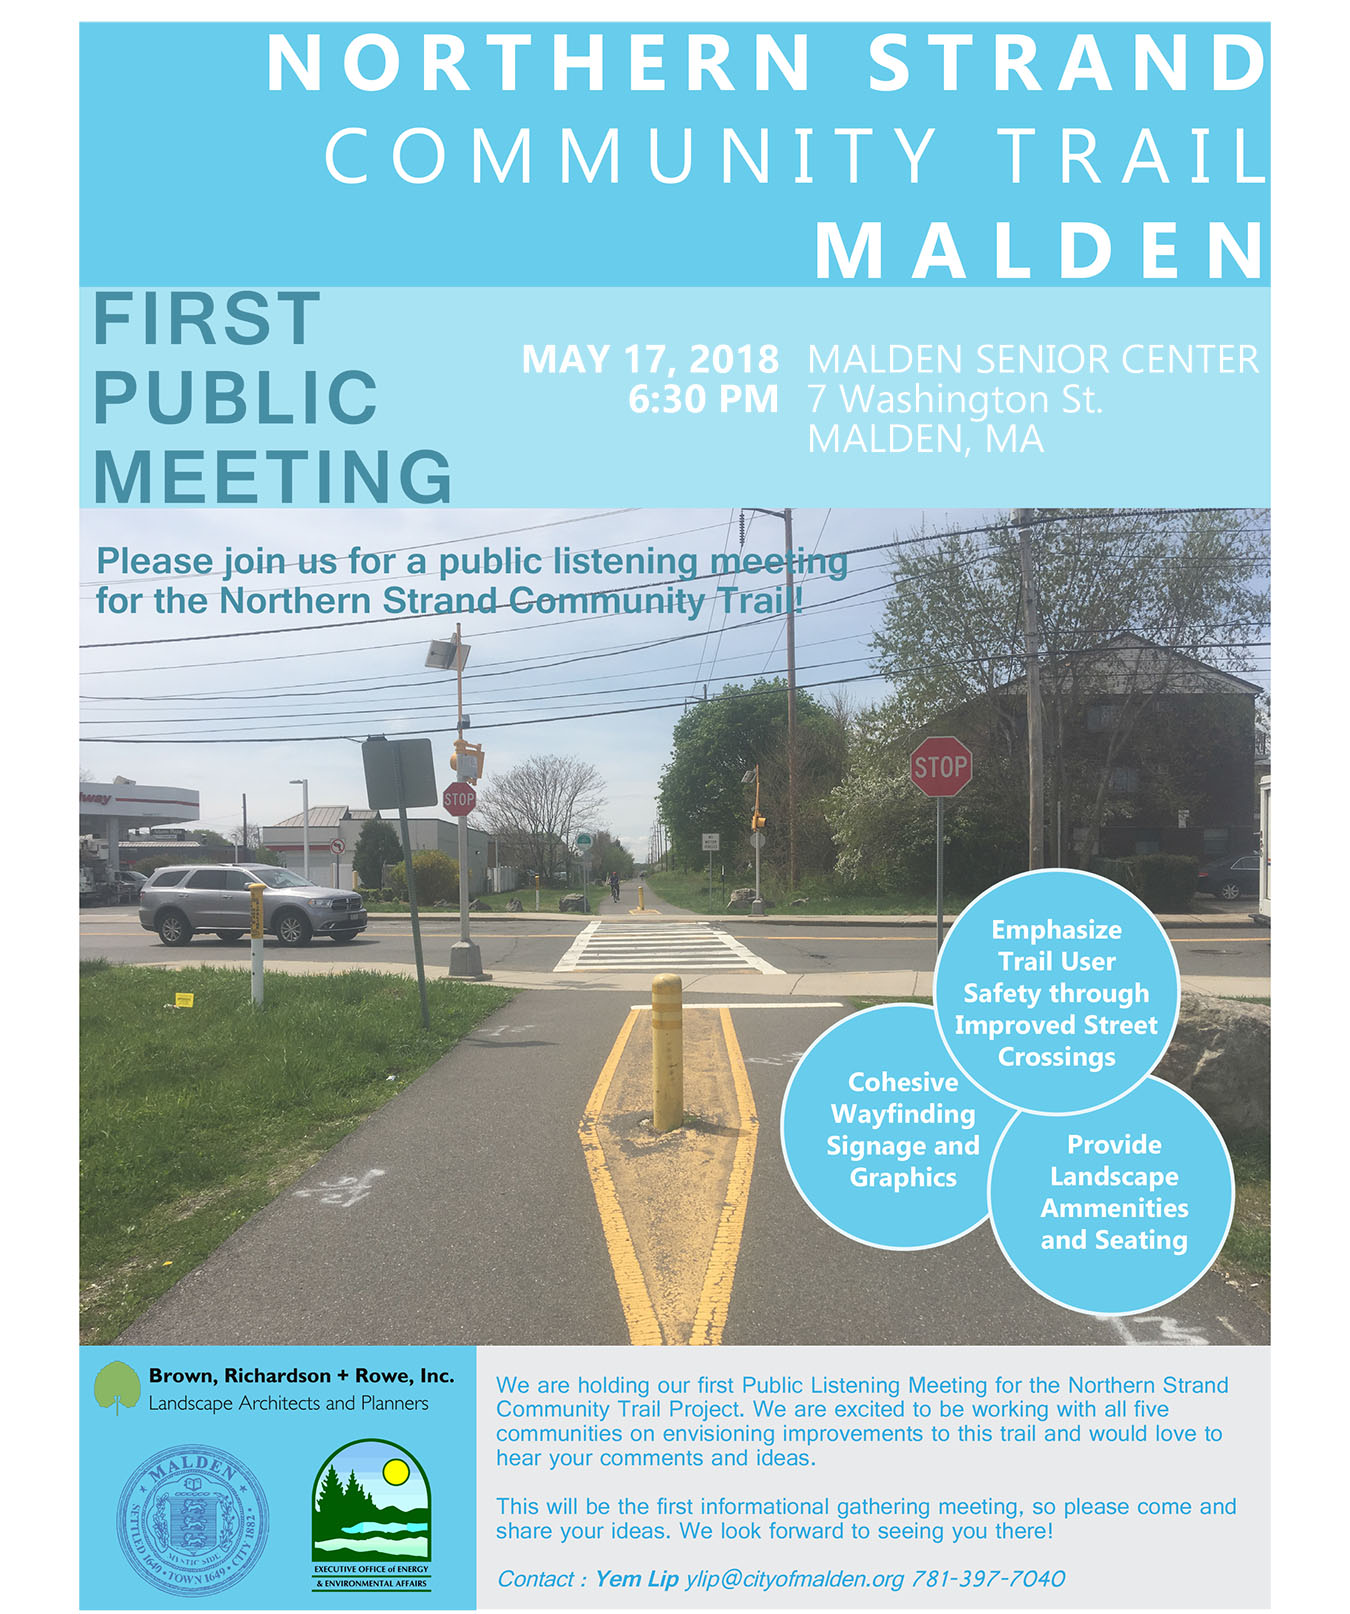 Public flyer with information on the public meeting in Malden.